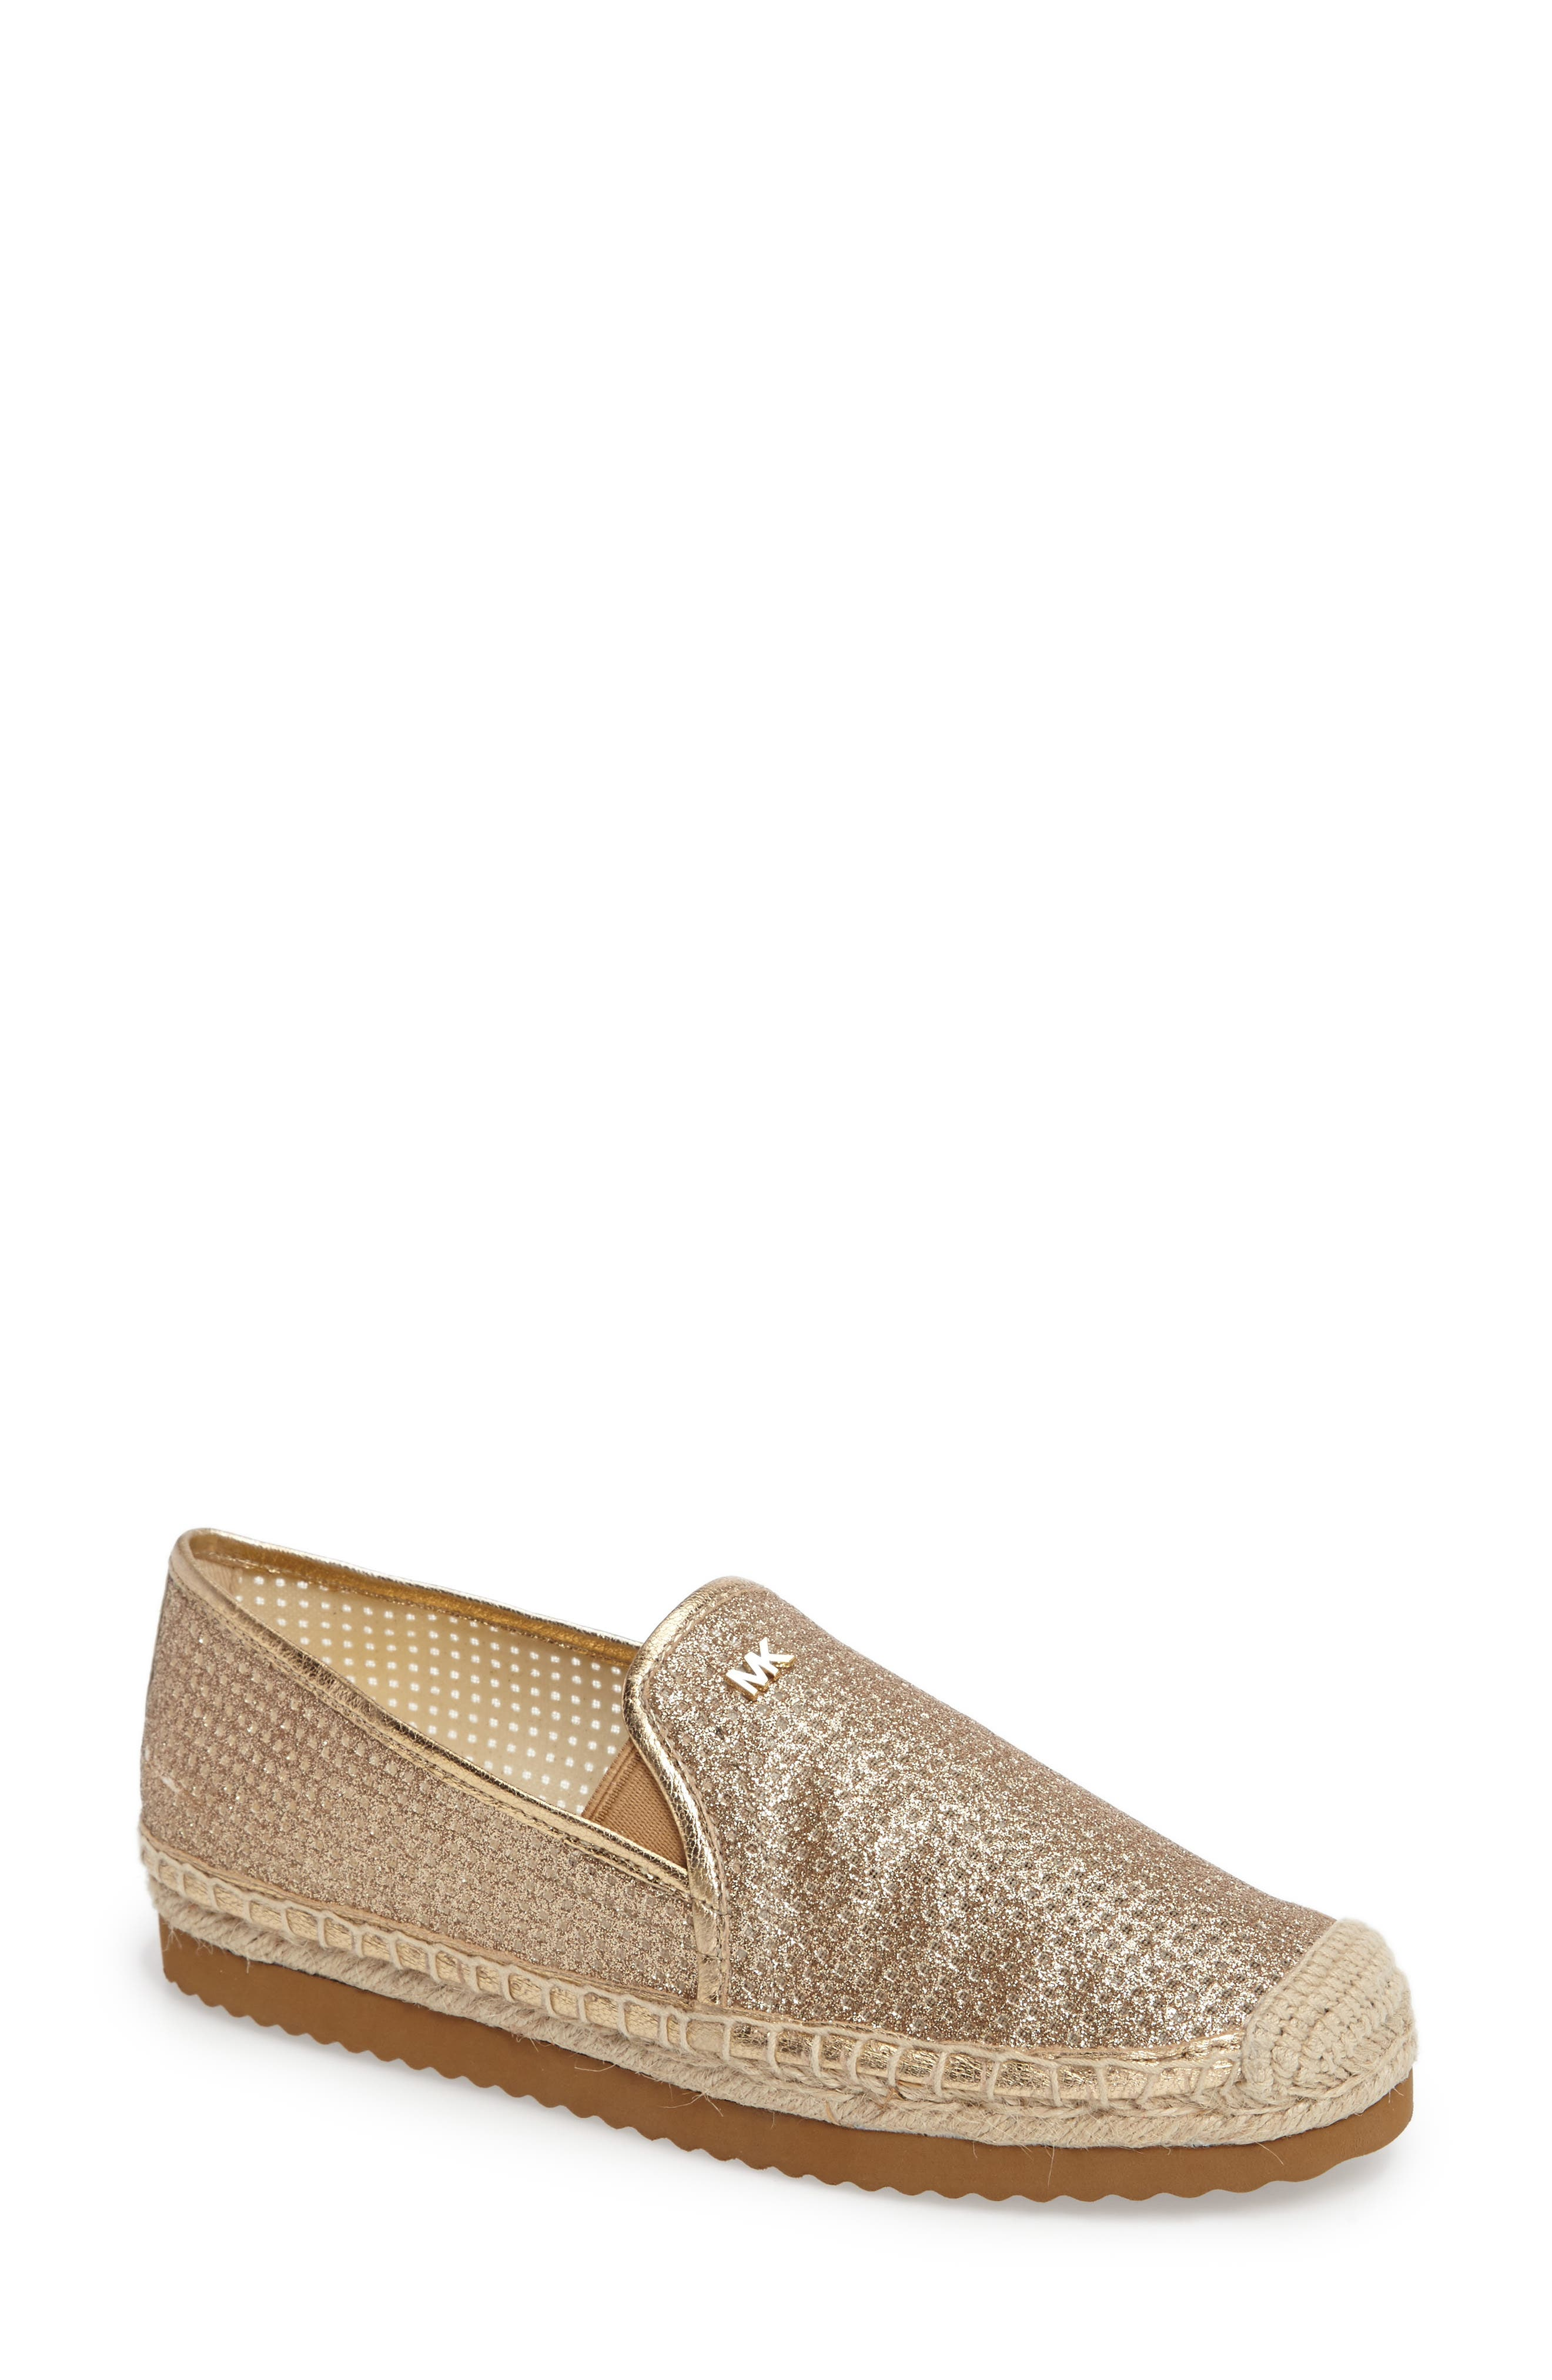 Hastings Espadrille Slip-On,                         Main,                         color, Pale Gold Leather